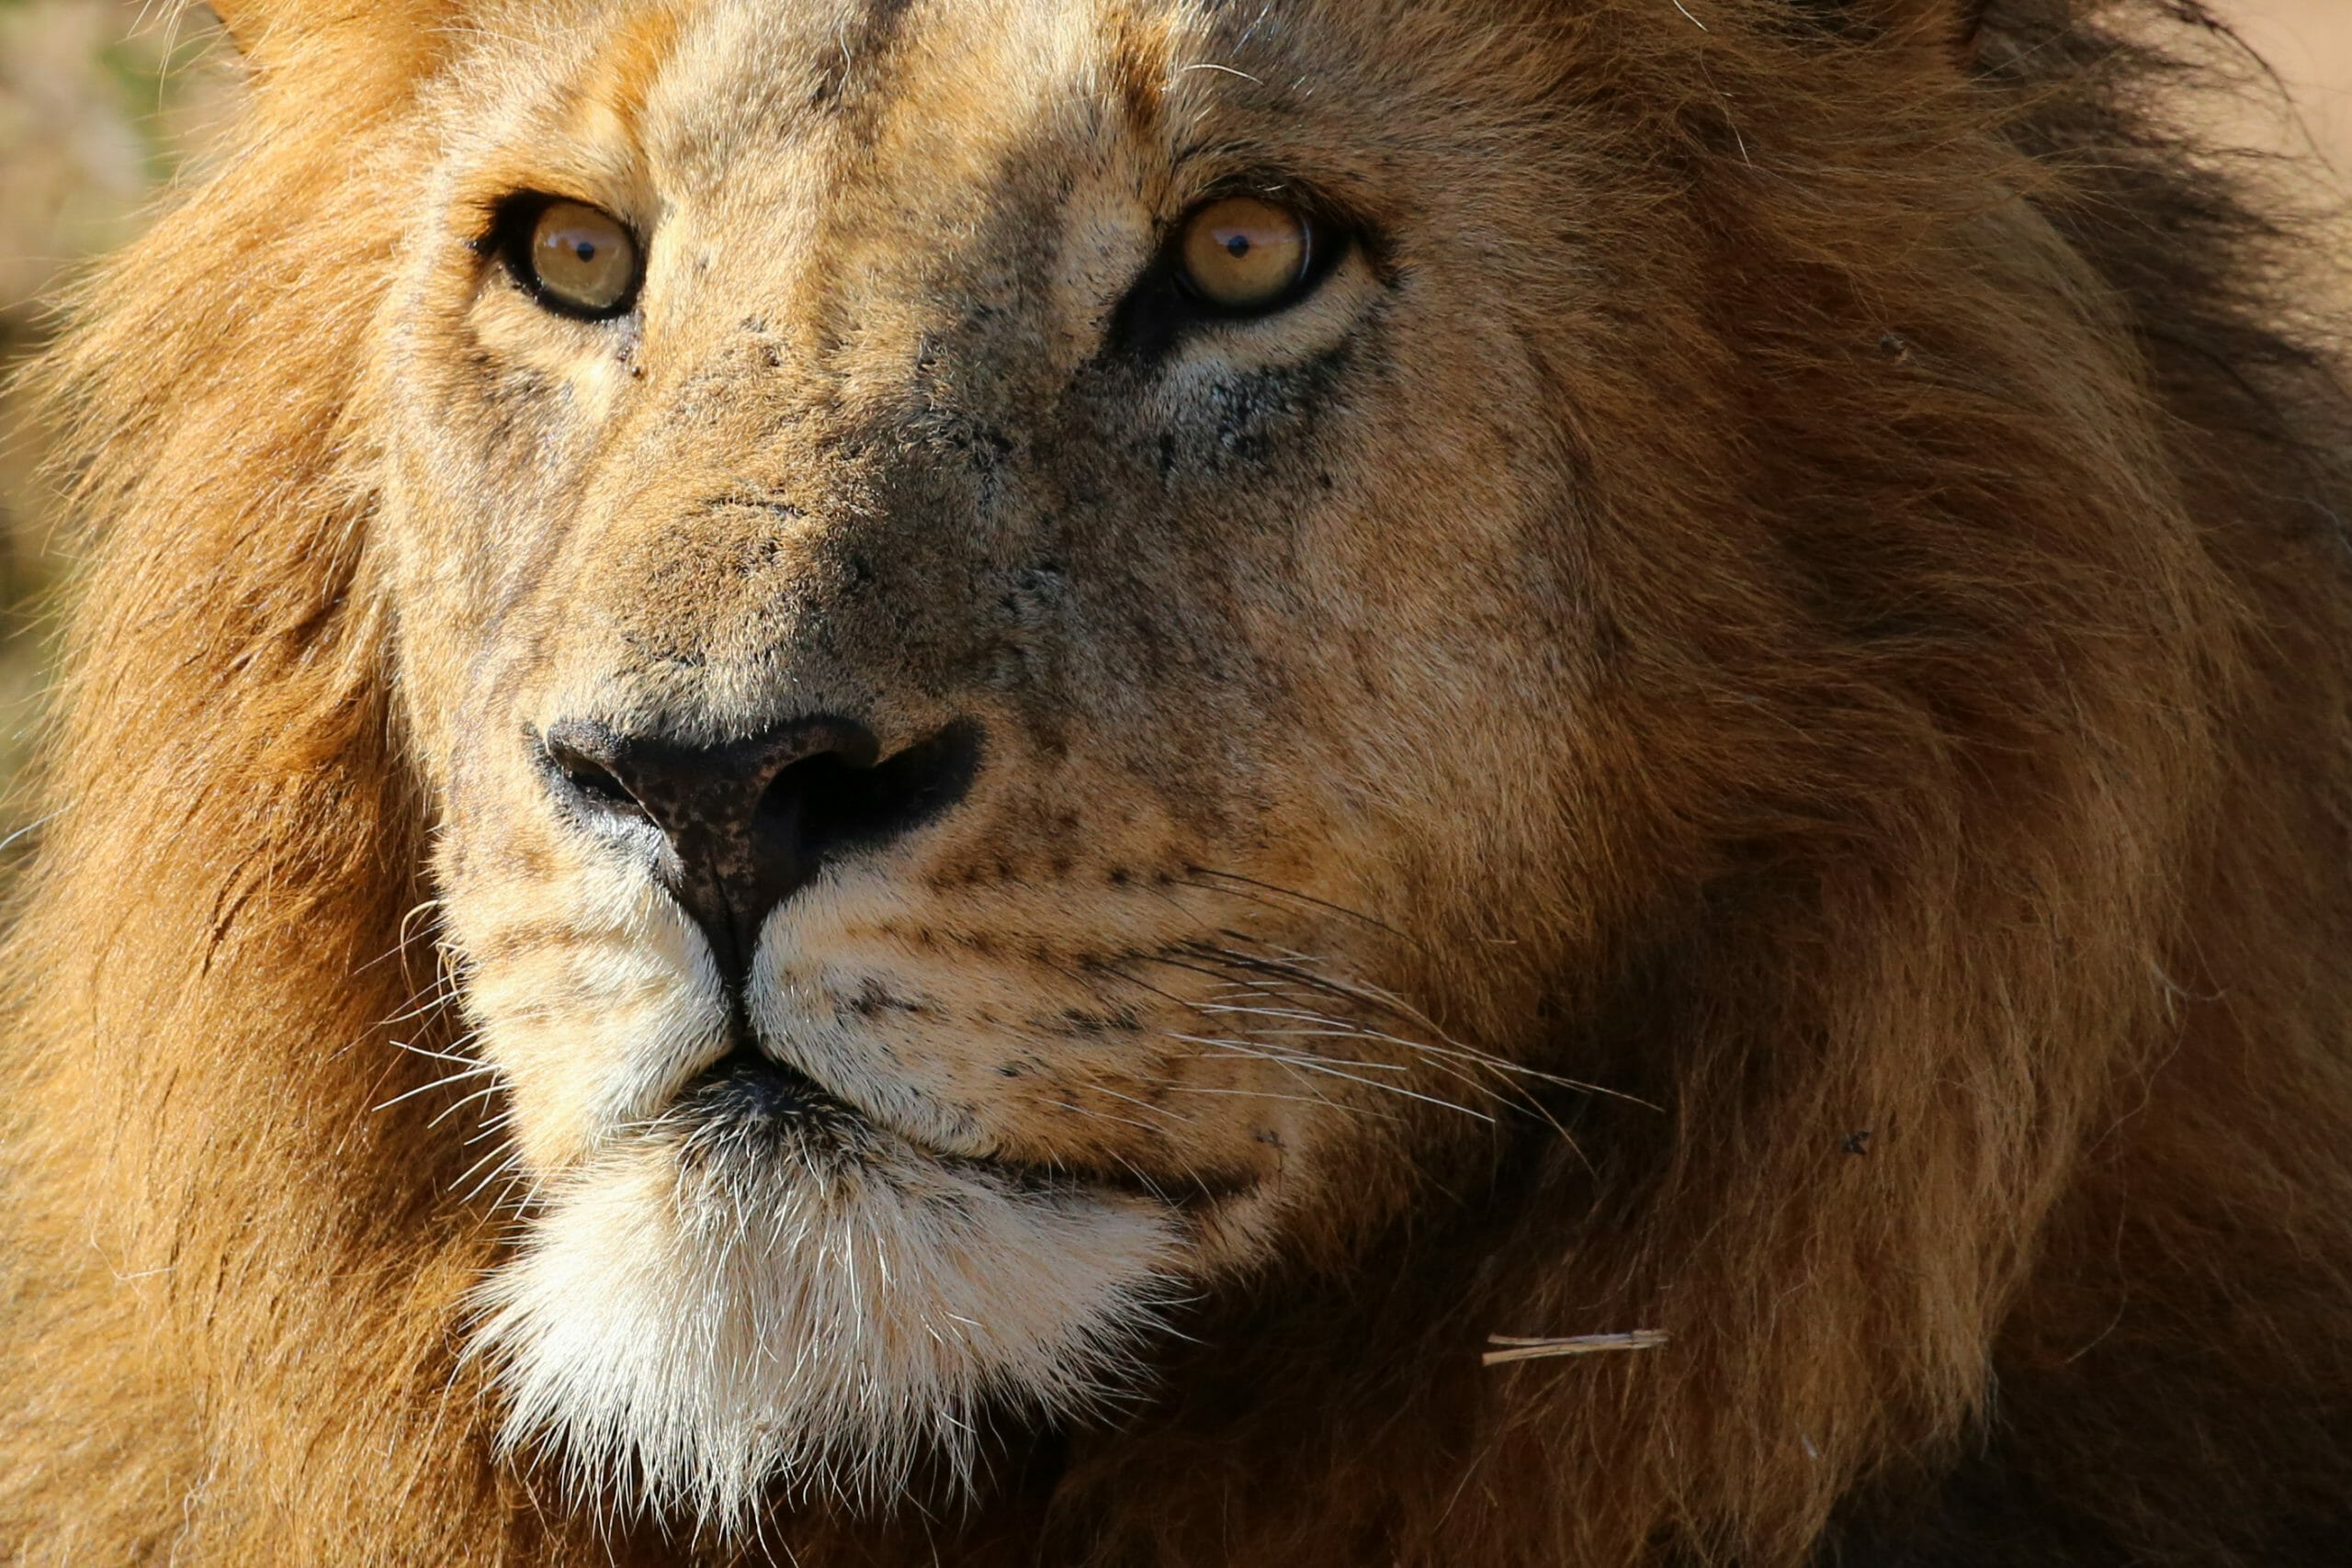 Close up of a male lion's face